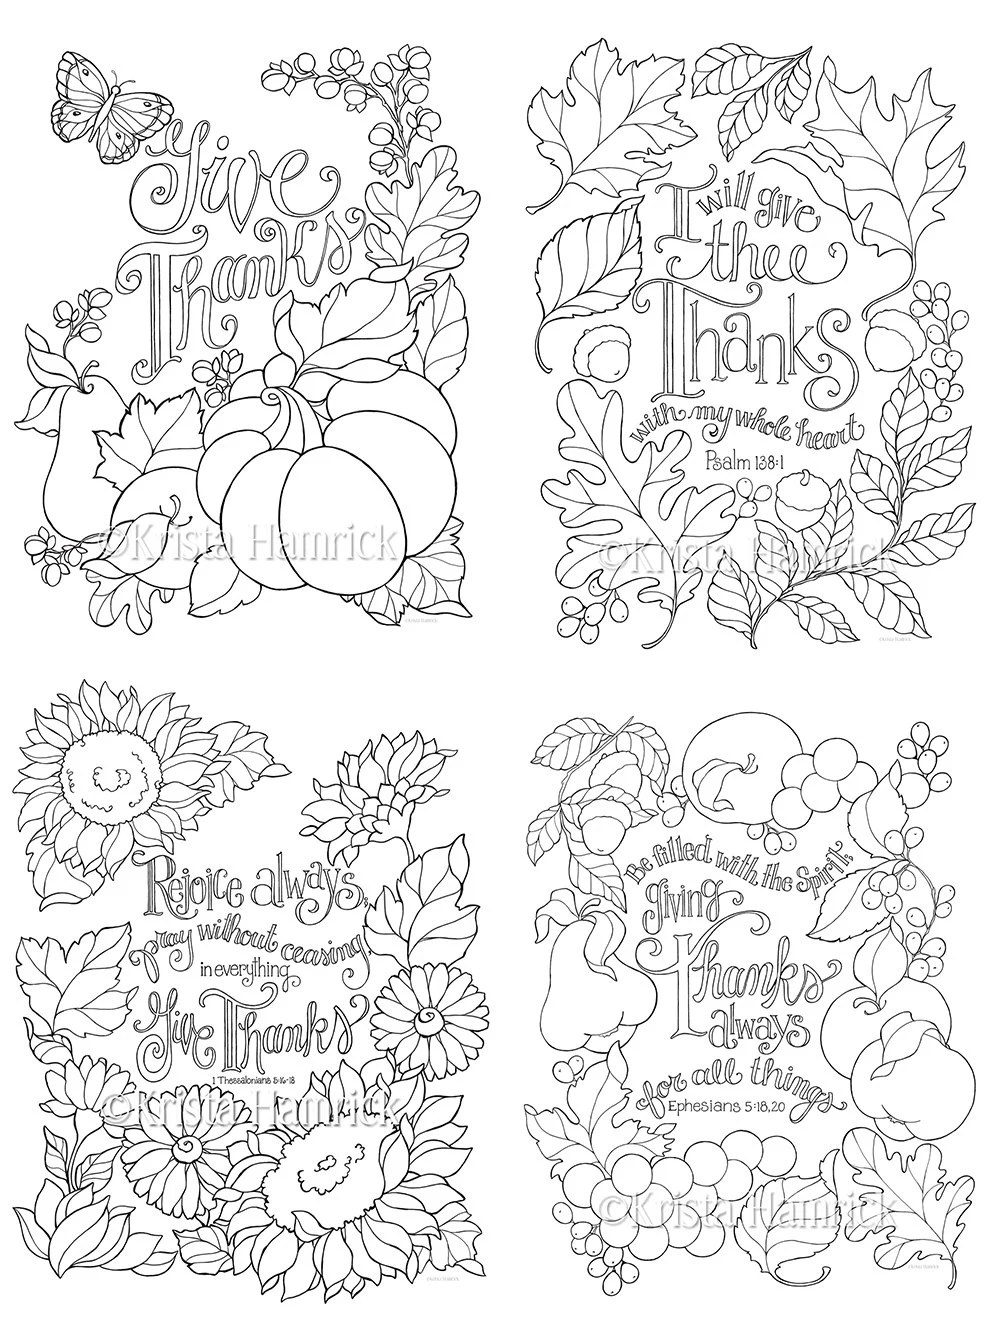 Grateful Heart series of four coloring pages in two sizes: